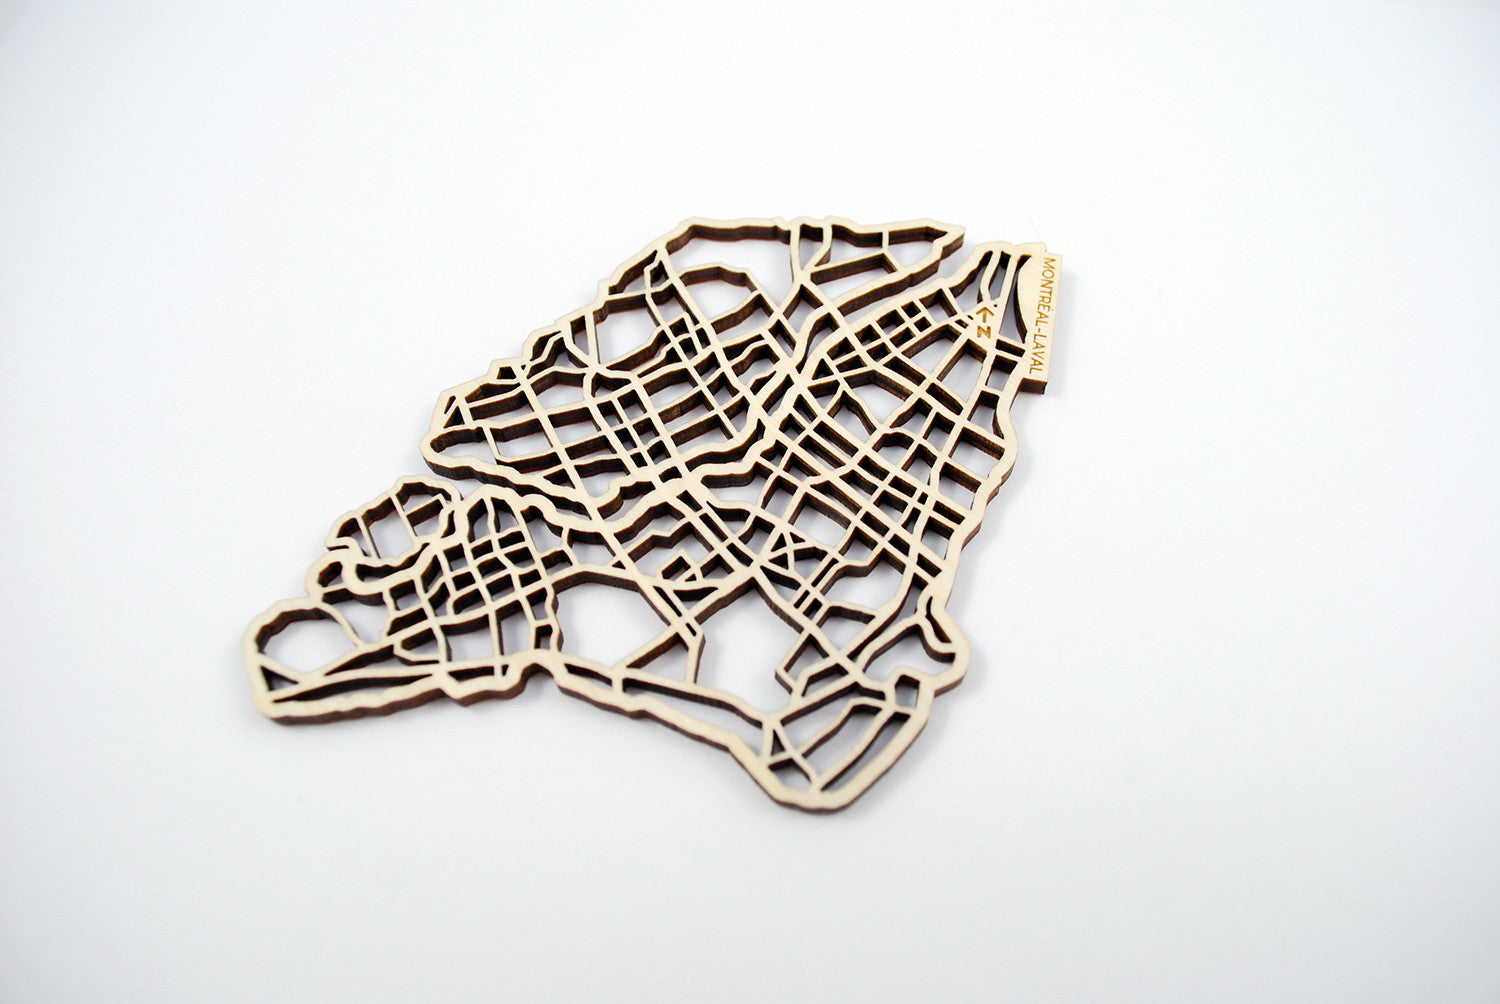 Montréal-Laval Map Coasters (set of 4)